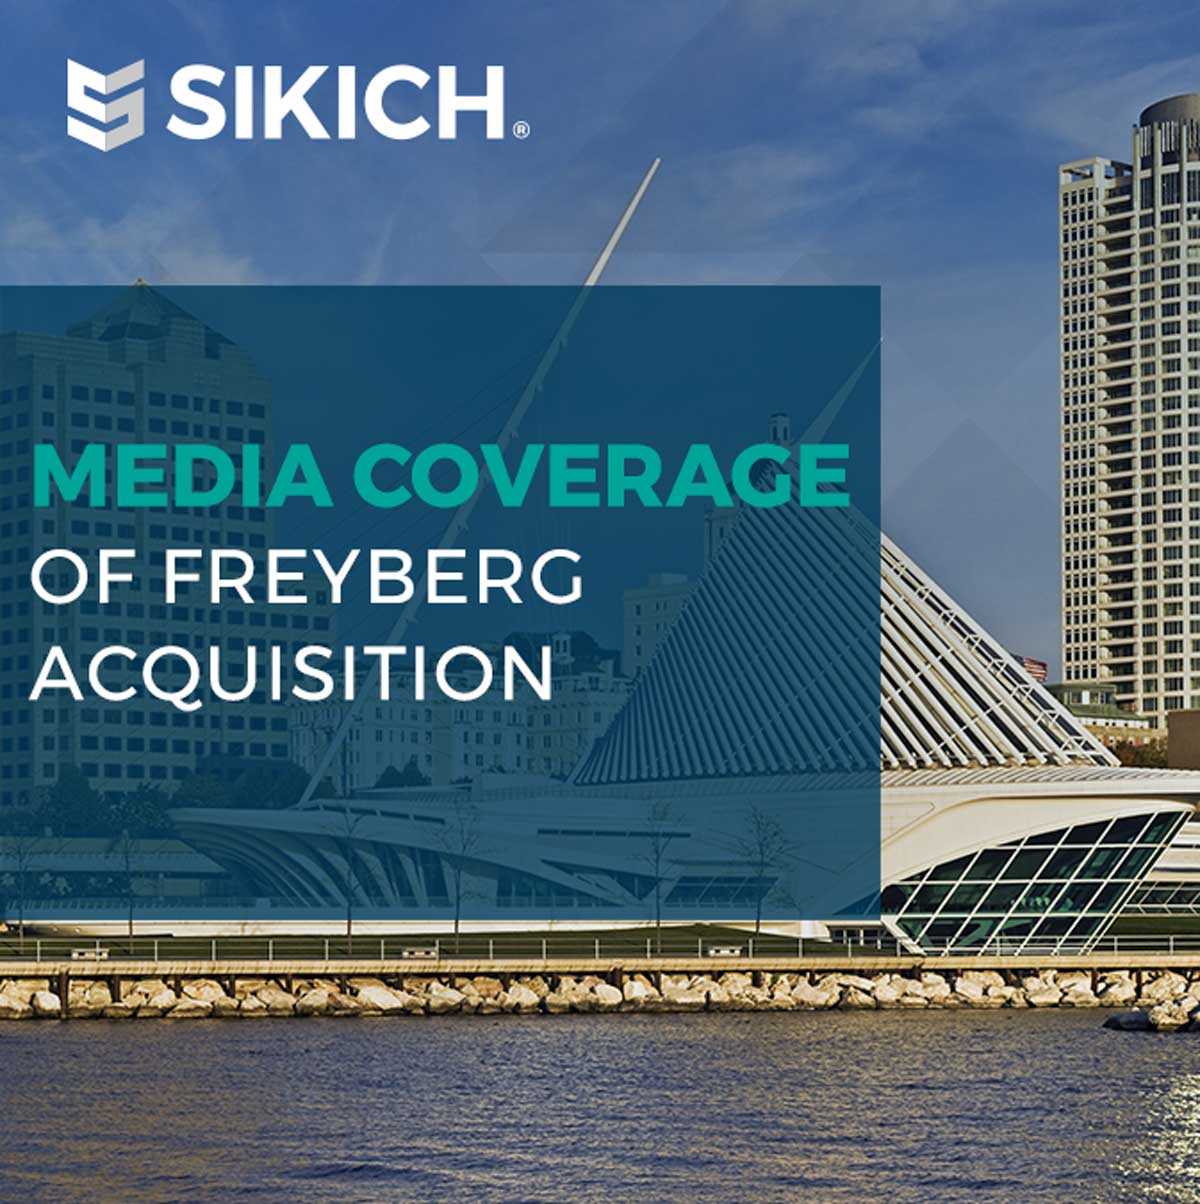 An image of a Milwaukee background with the text Media coverage of Freyberg acquisition across the image